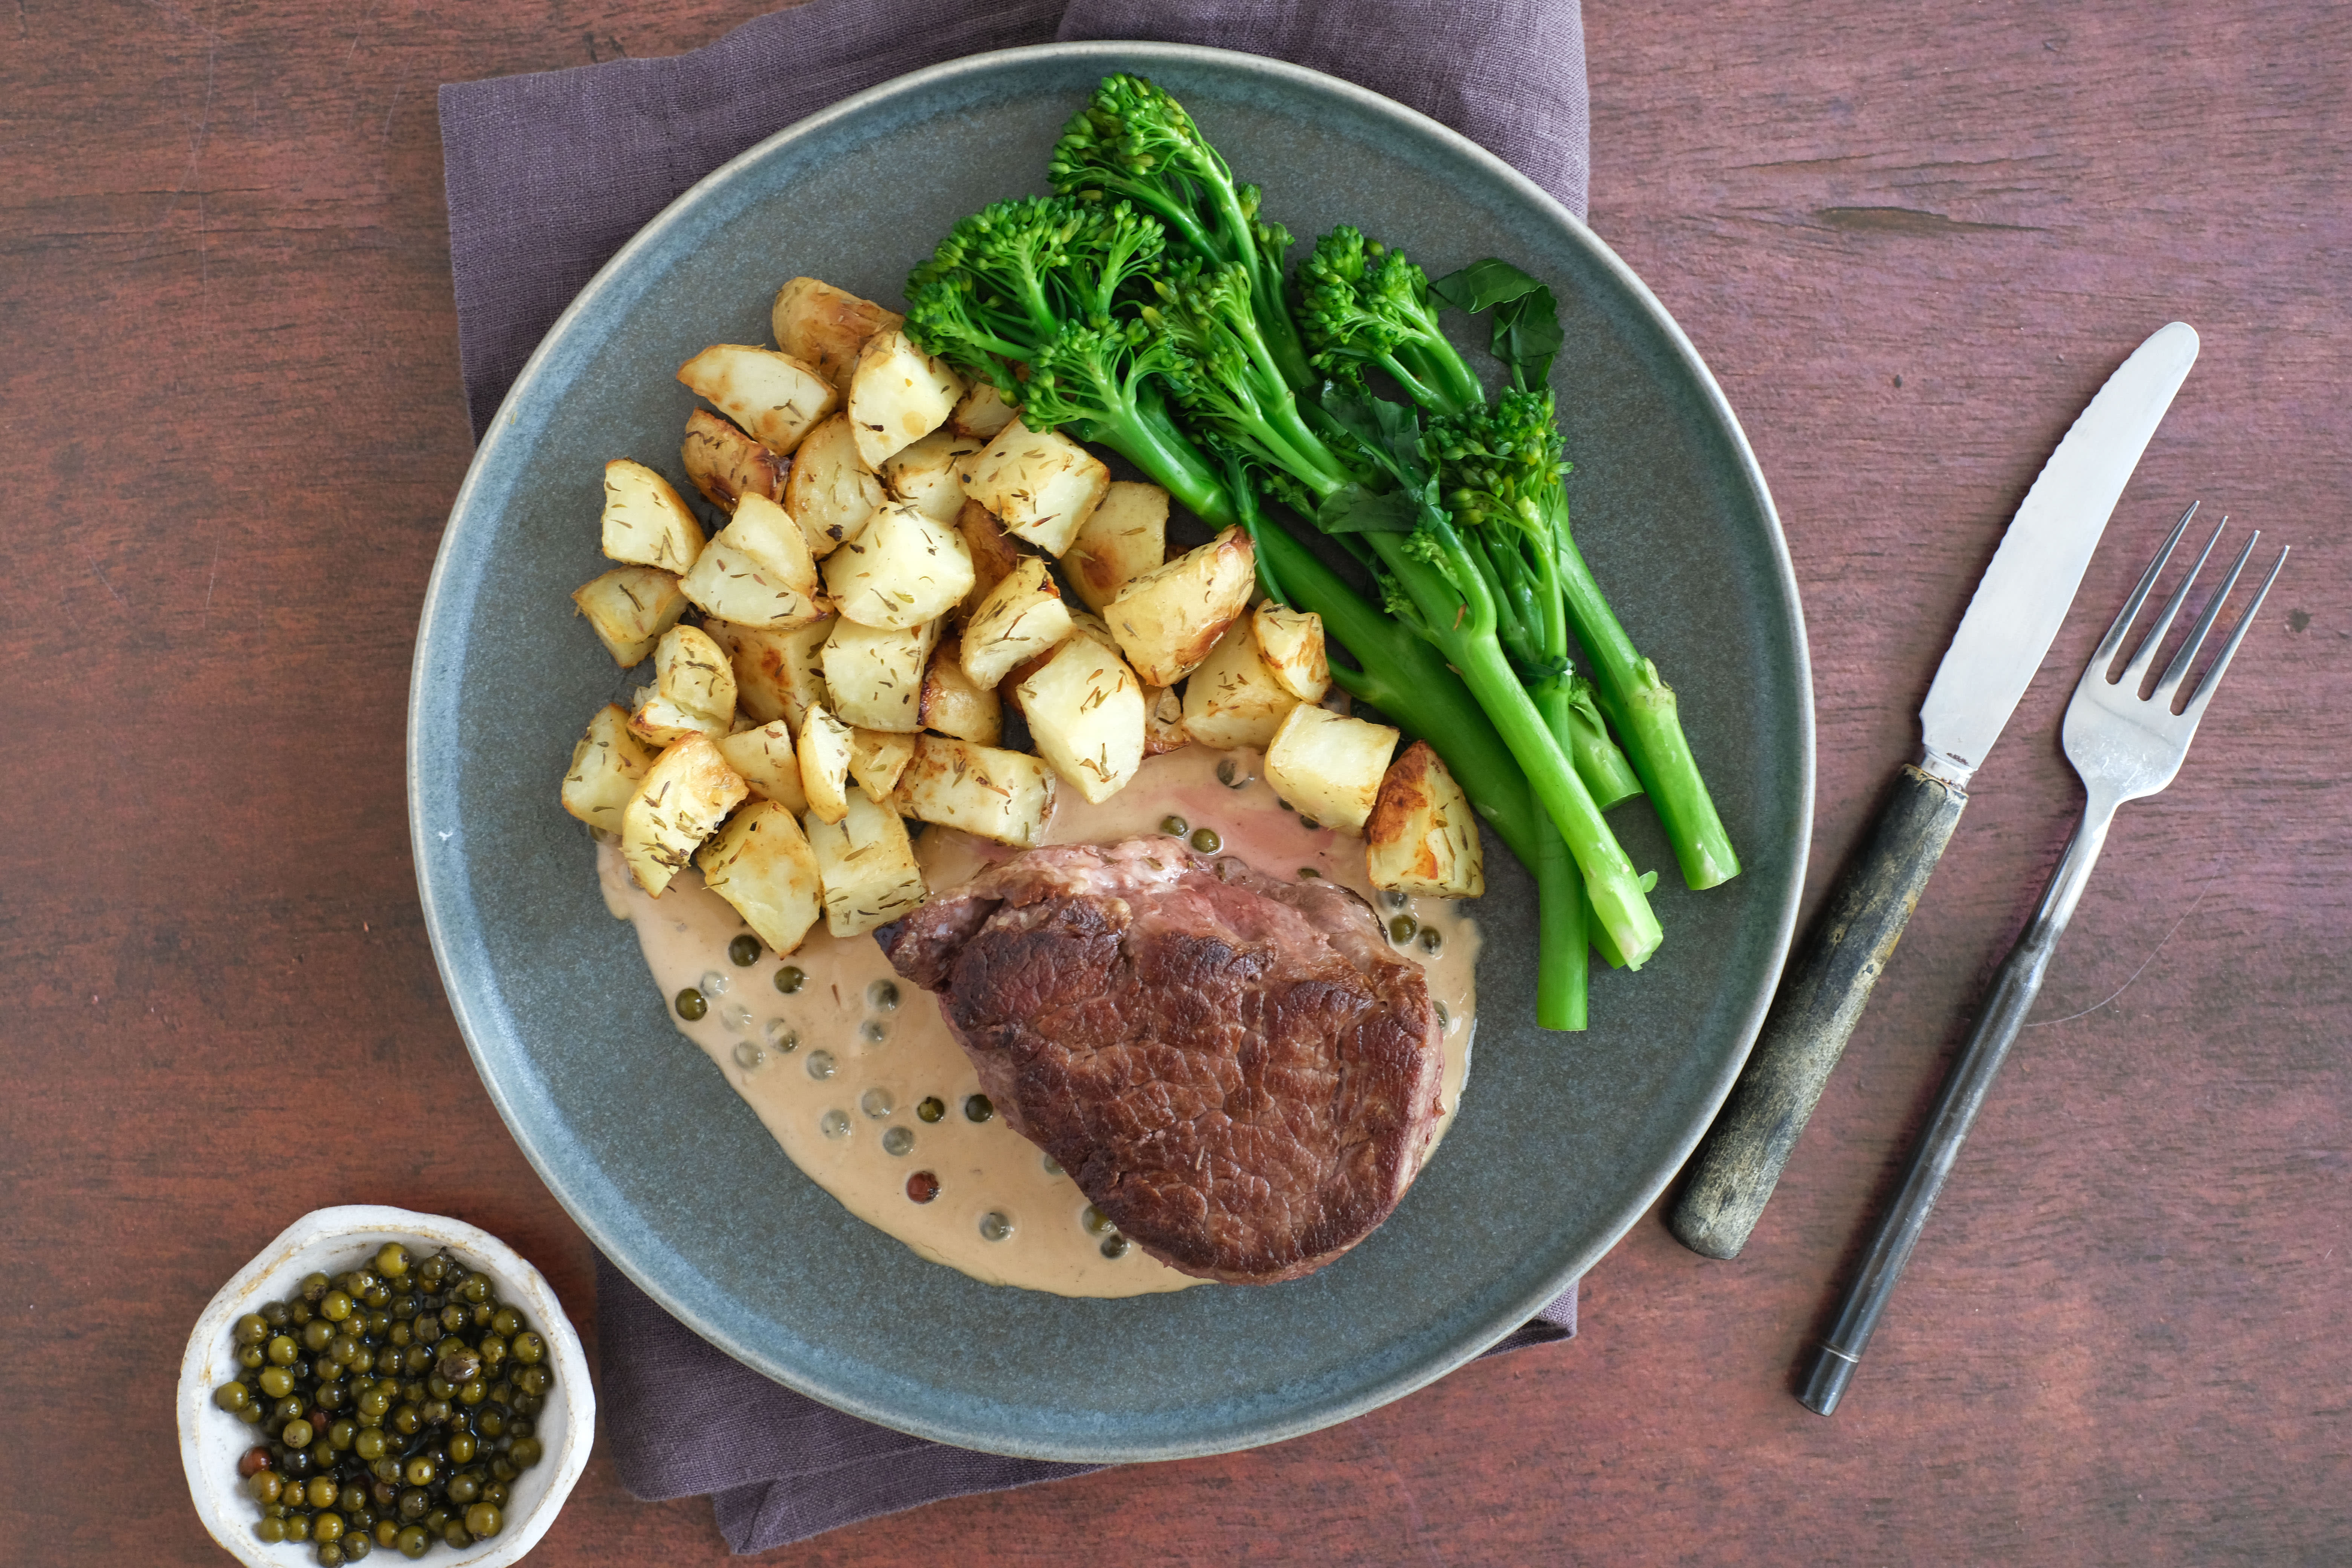 Fillet Steak with Broccolini, Roasted Baby Potatoes and Green Peppercorn Sauce